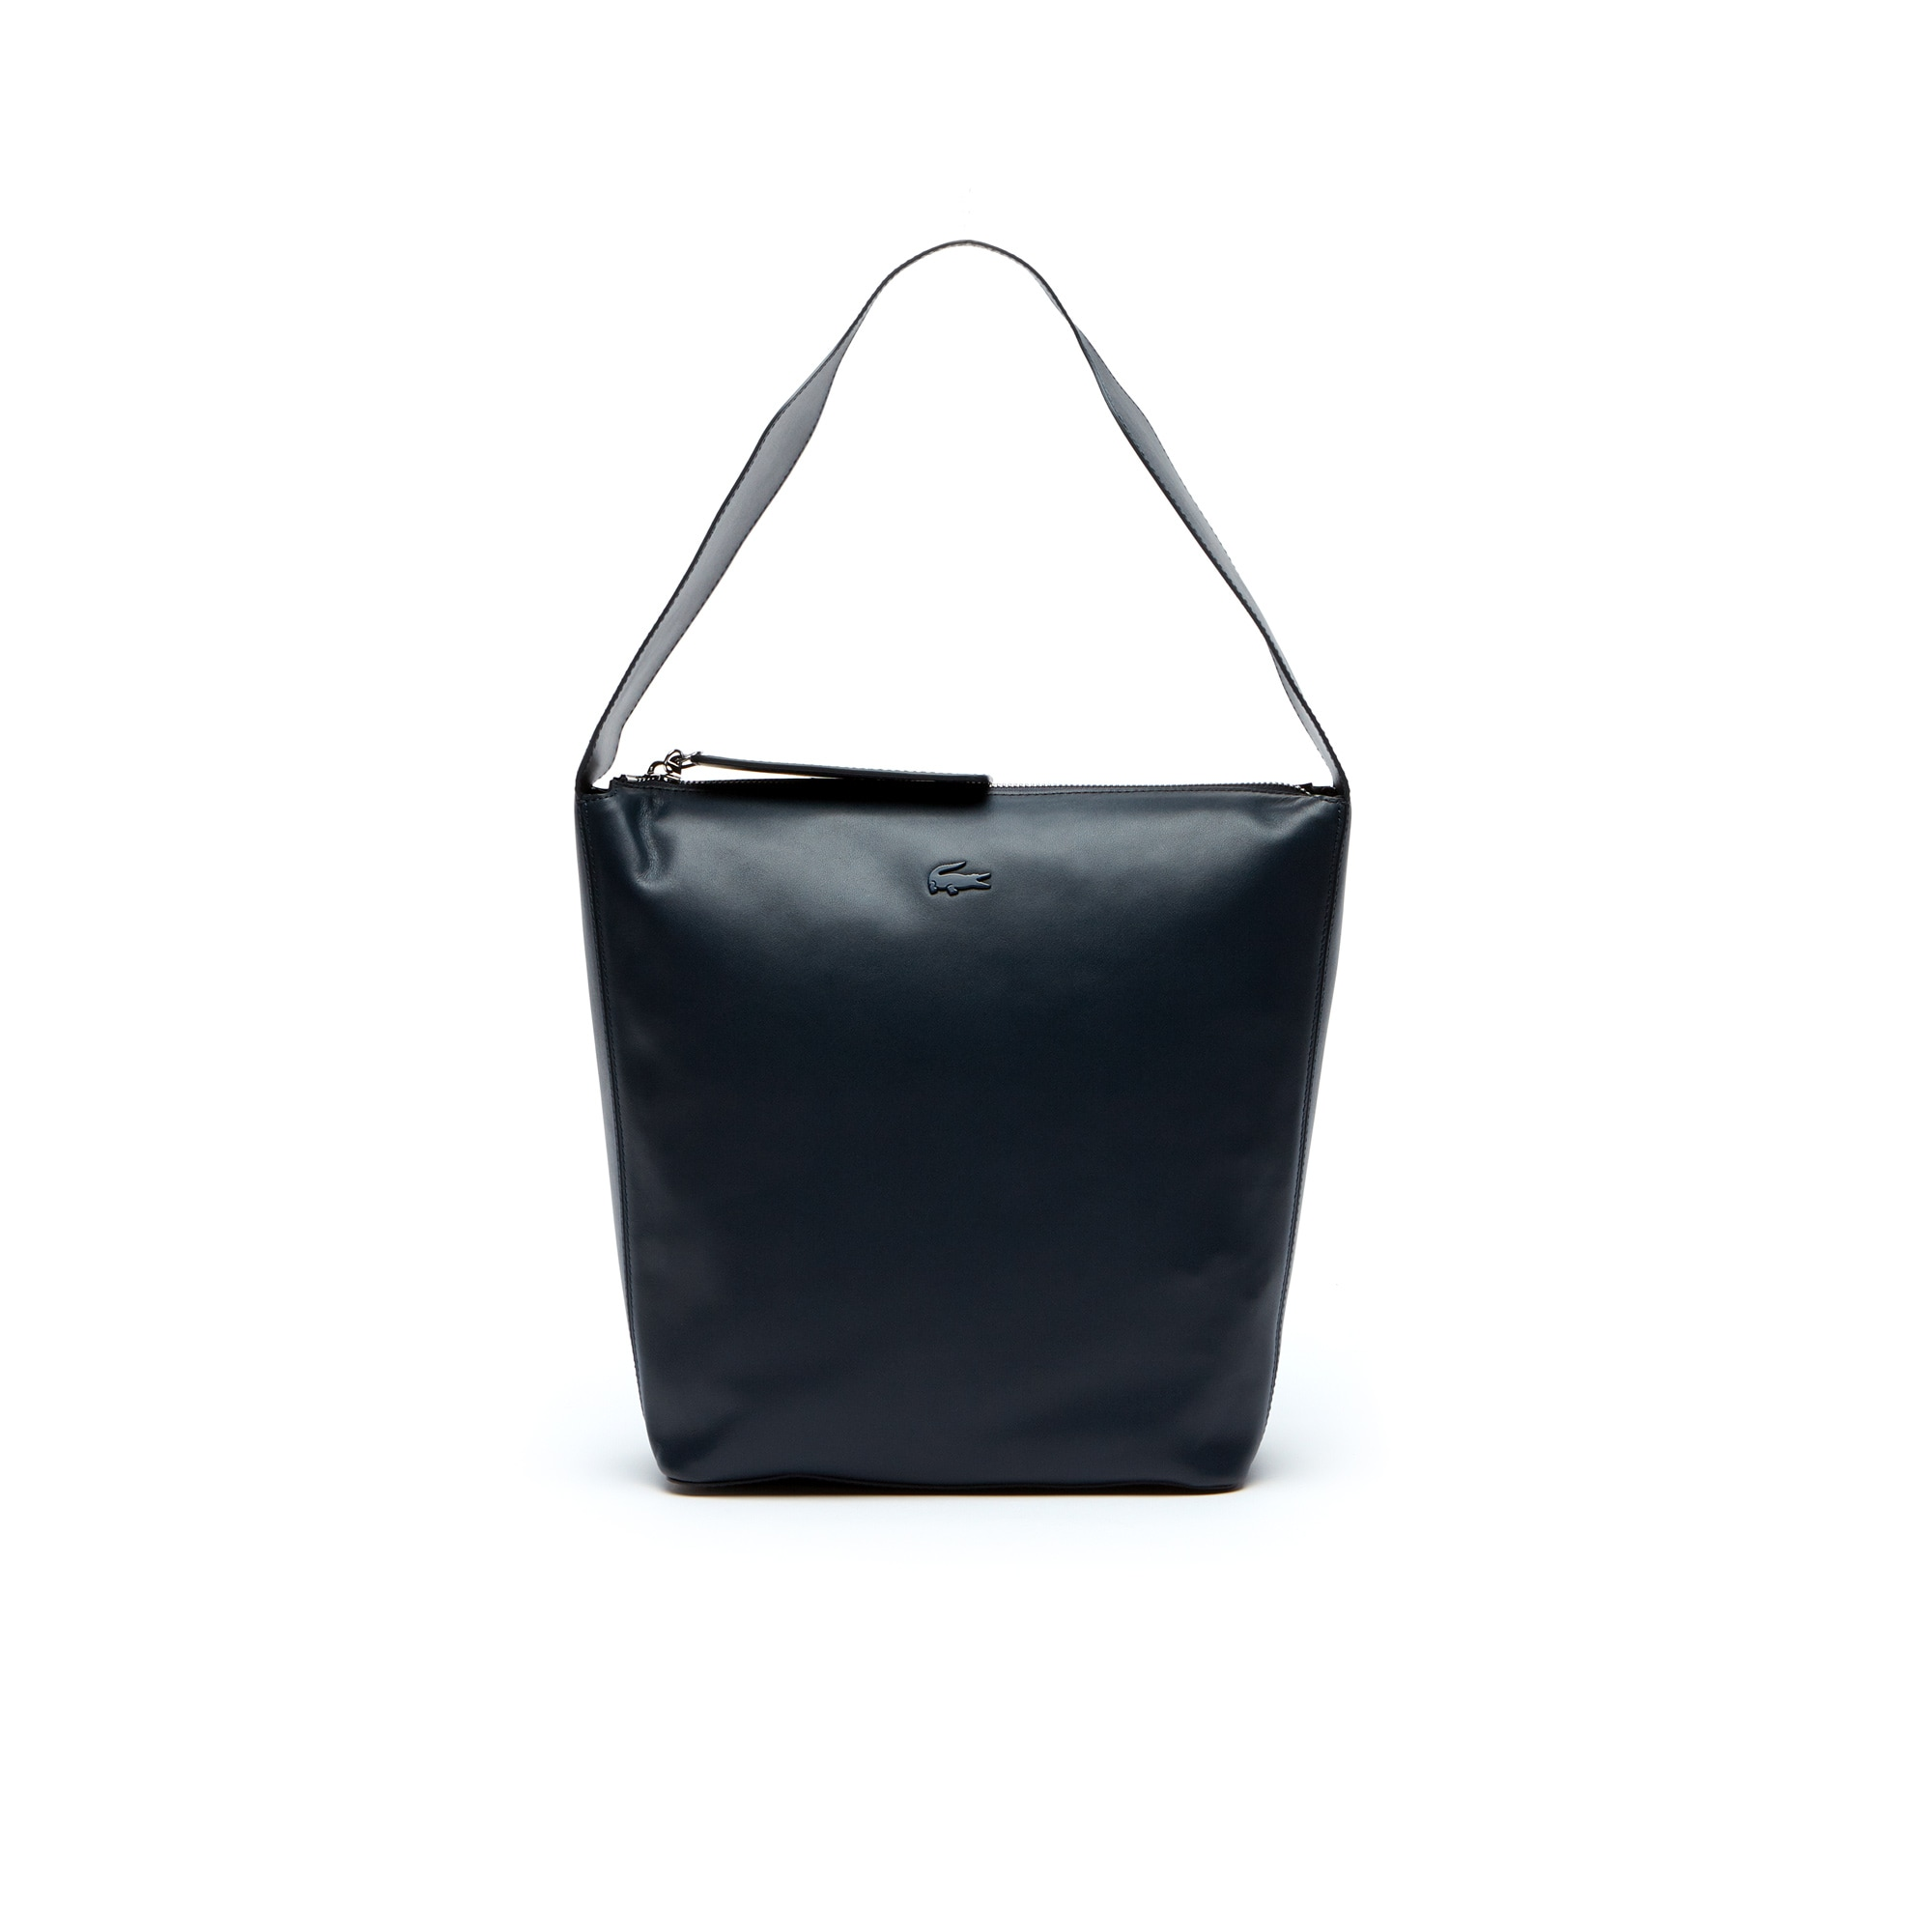 Women's Purity Soft Monochrome Leather Hobo Bag